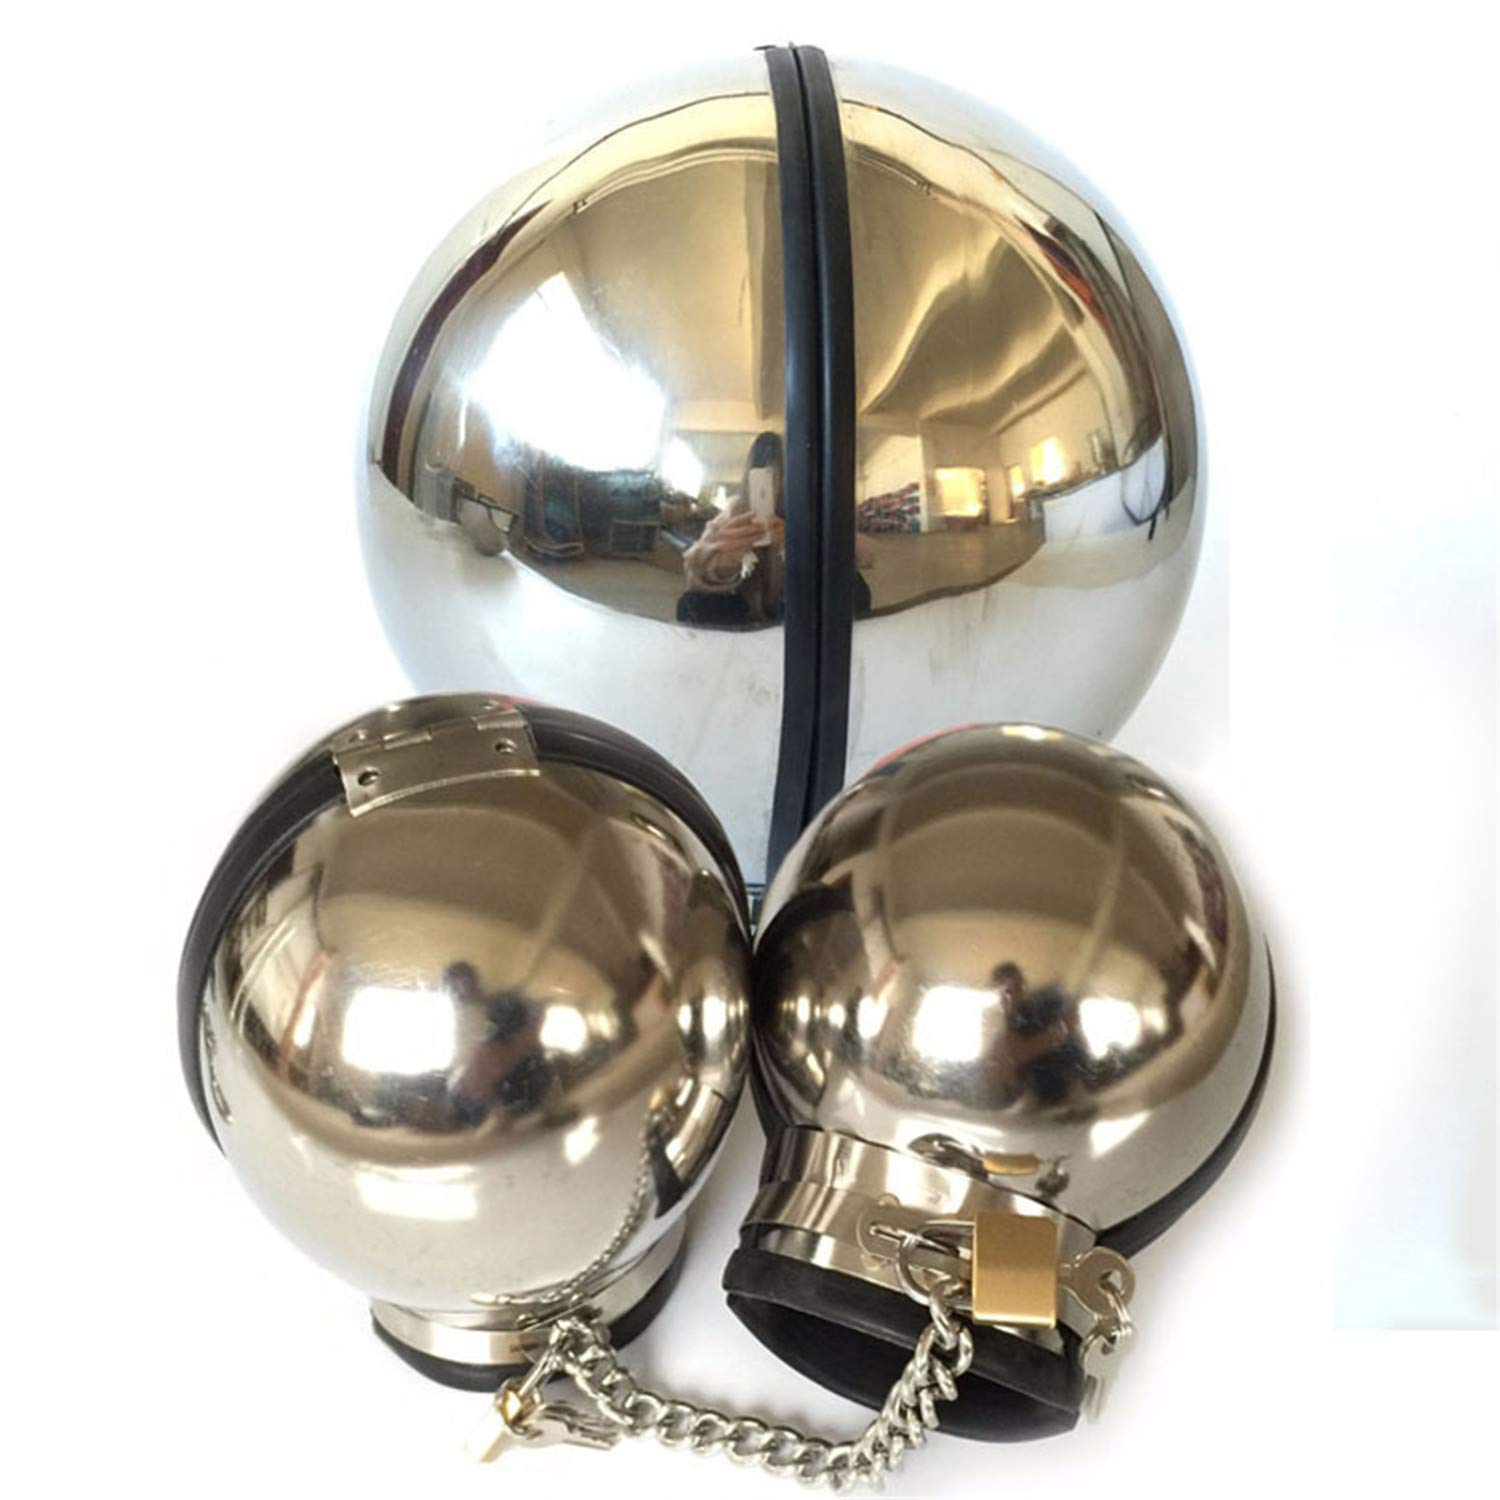 C-Atheter Sound Adult Game Metal Ball Stainless Steel Bondage-Set Hand Dersimio Collar Restraints Cuff Neck Sěx-Toys For Couples Handcuffs